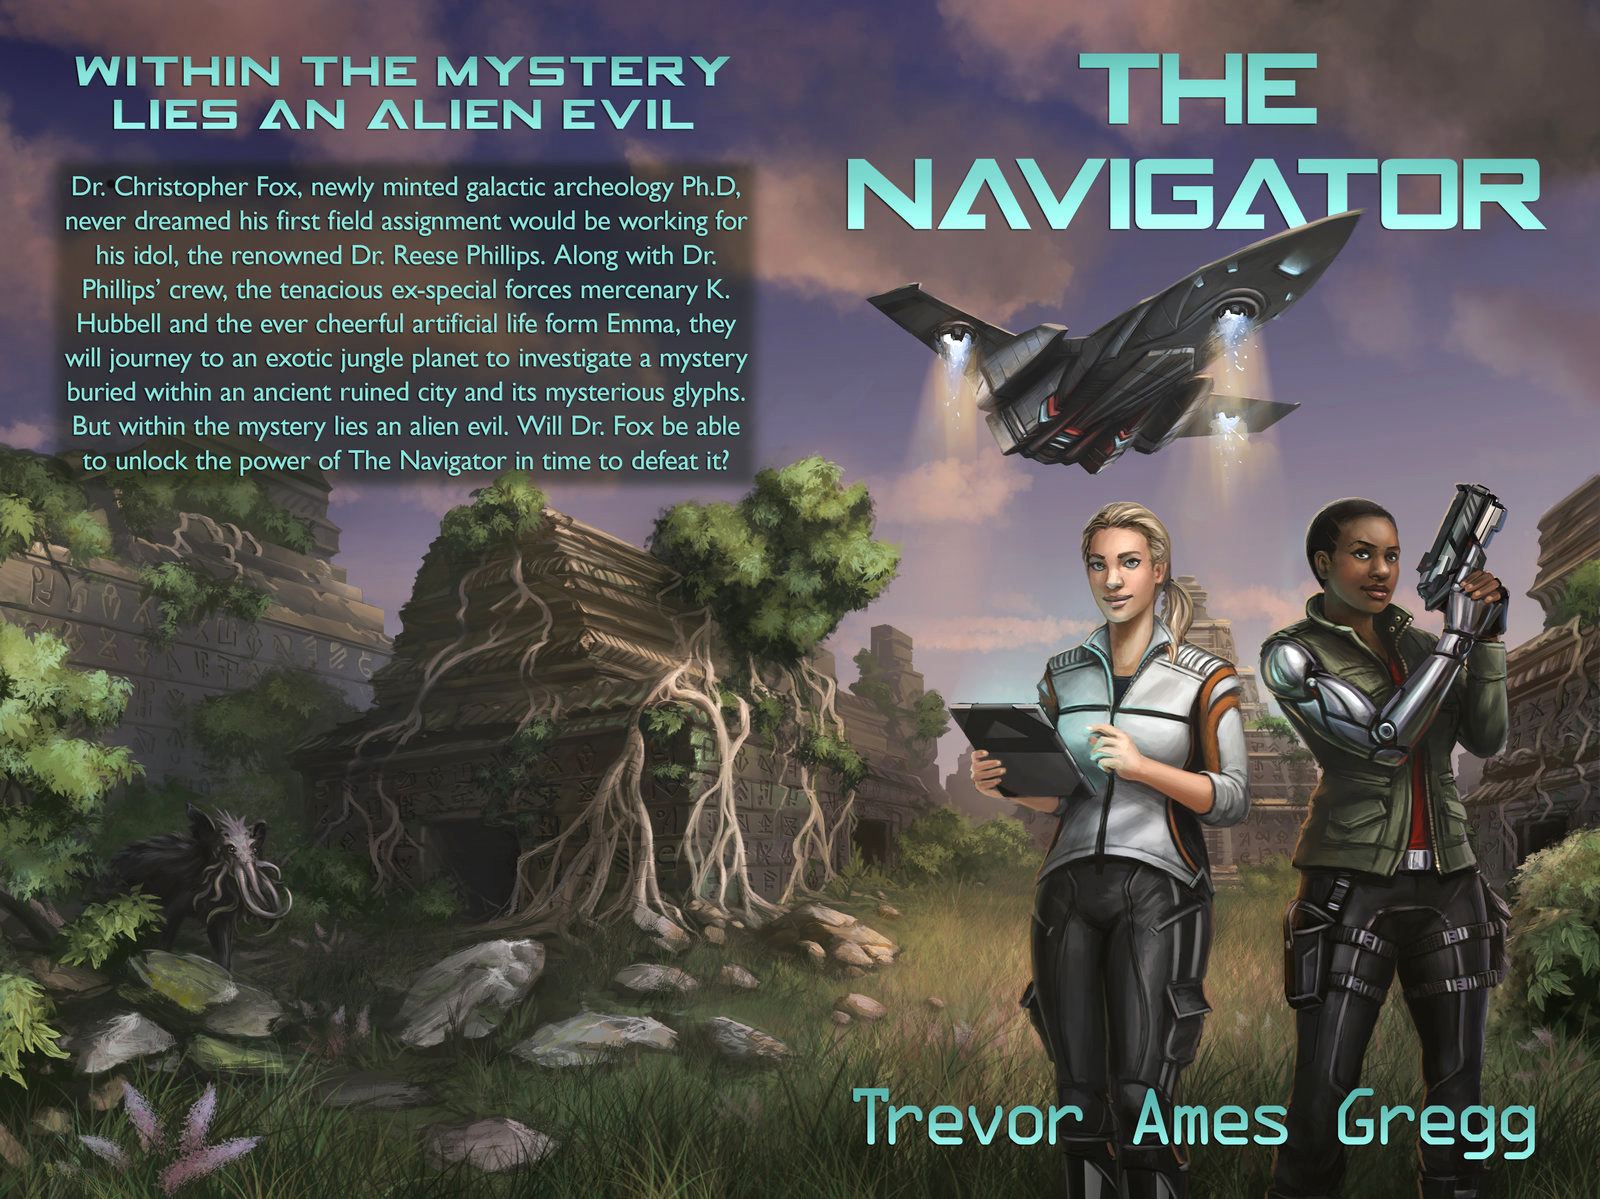 Commission - THE NAVIGATOR Book Cover